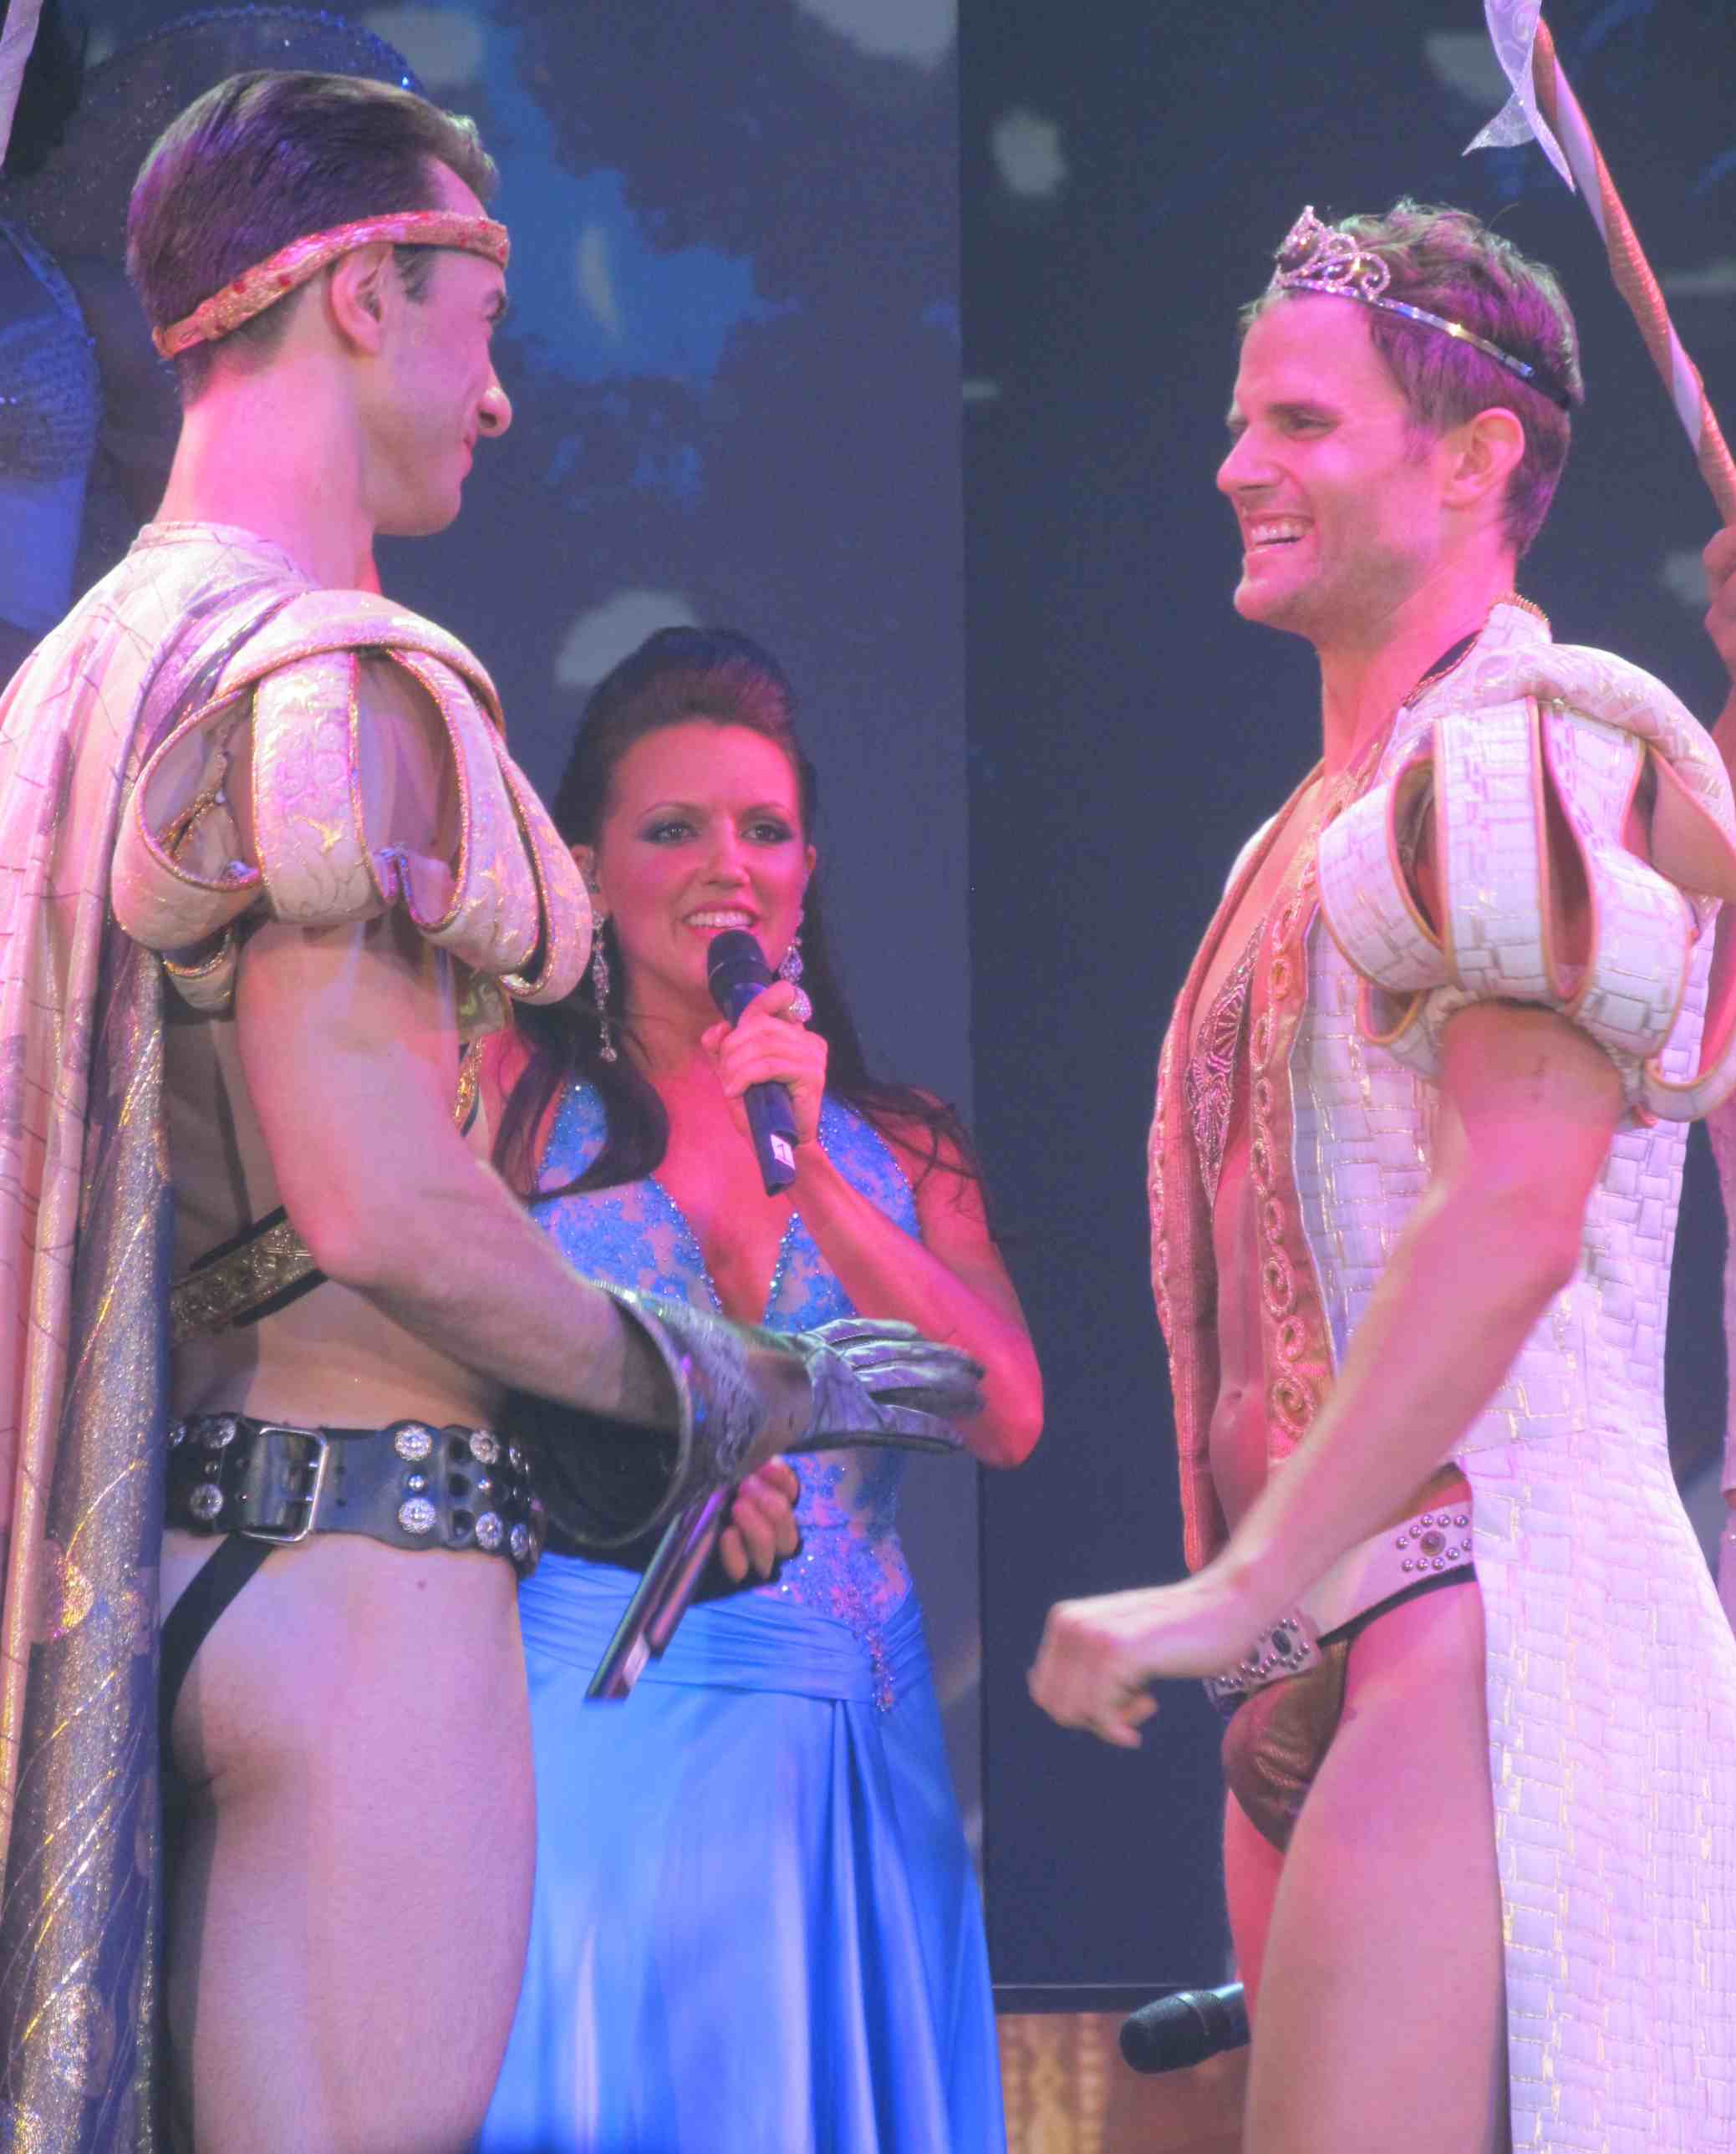 broadwaybares-24.jpg